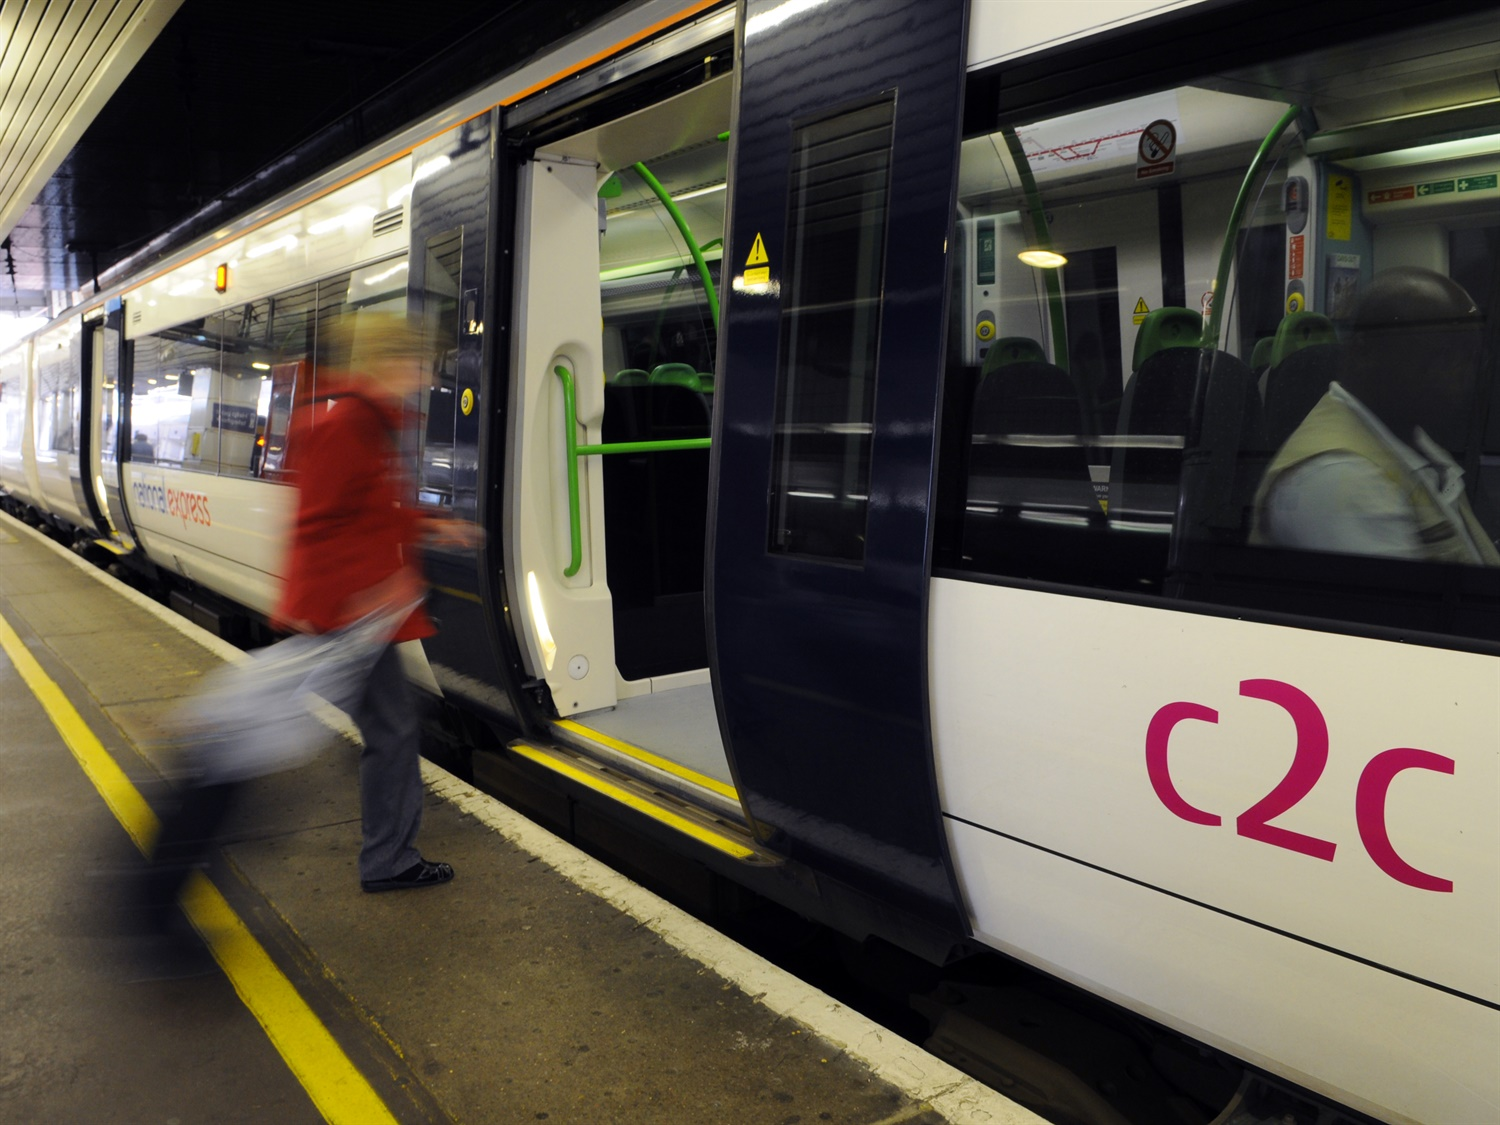 National Express to sell c2c franchise to Trenitalia, quitting UK rail